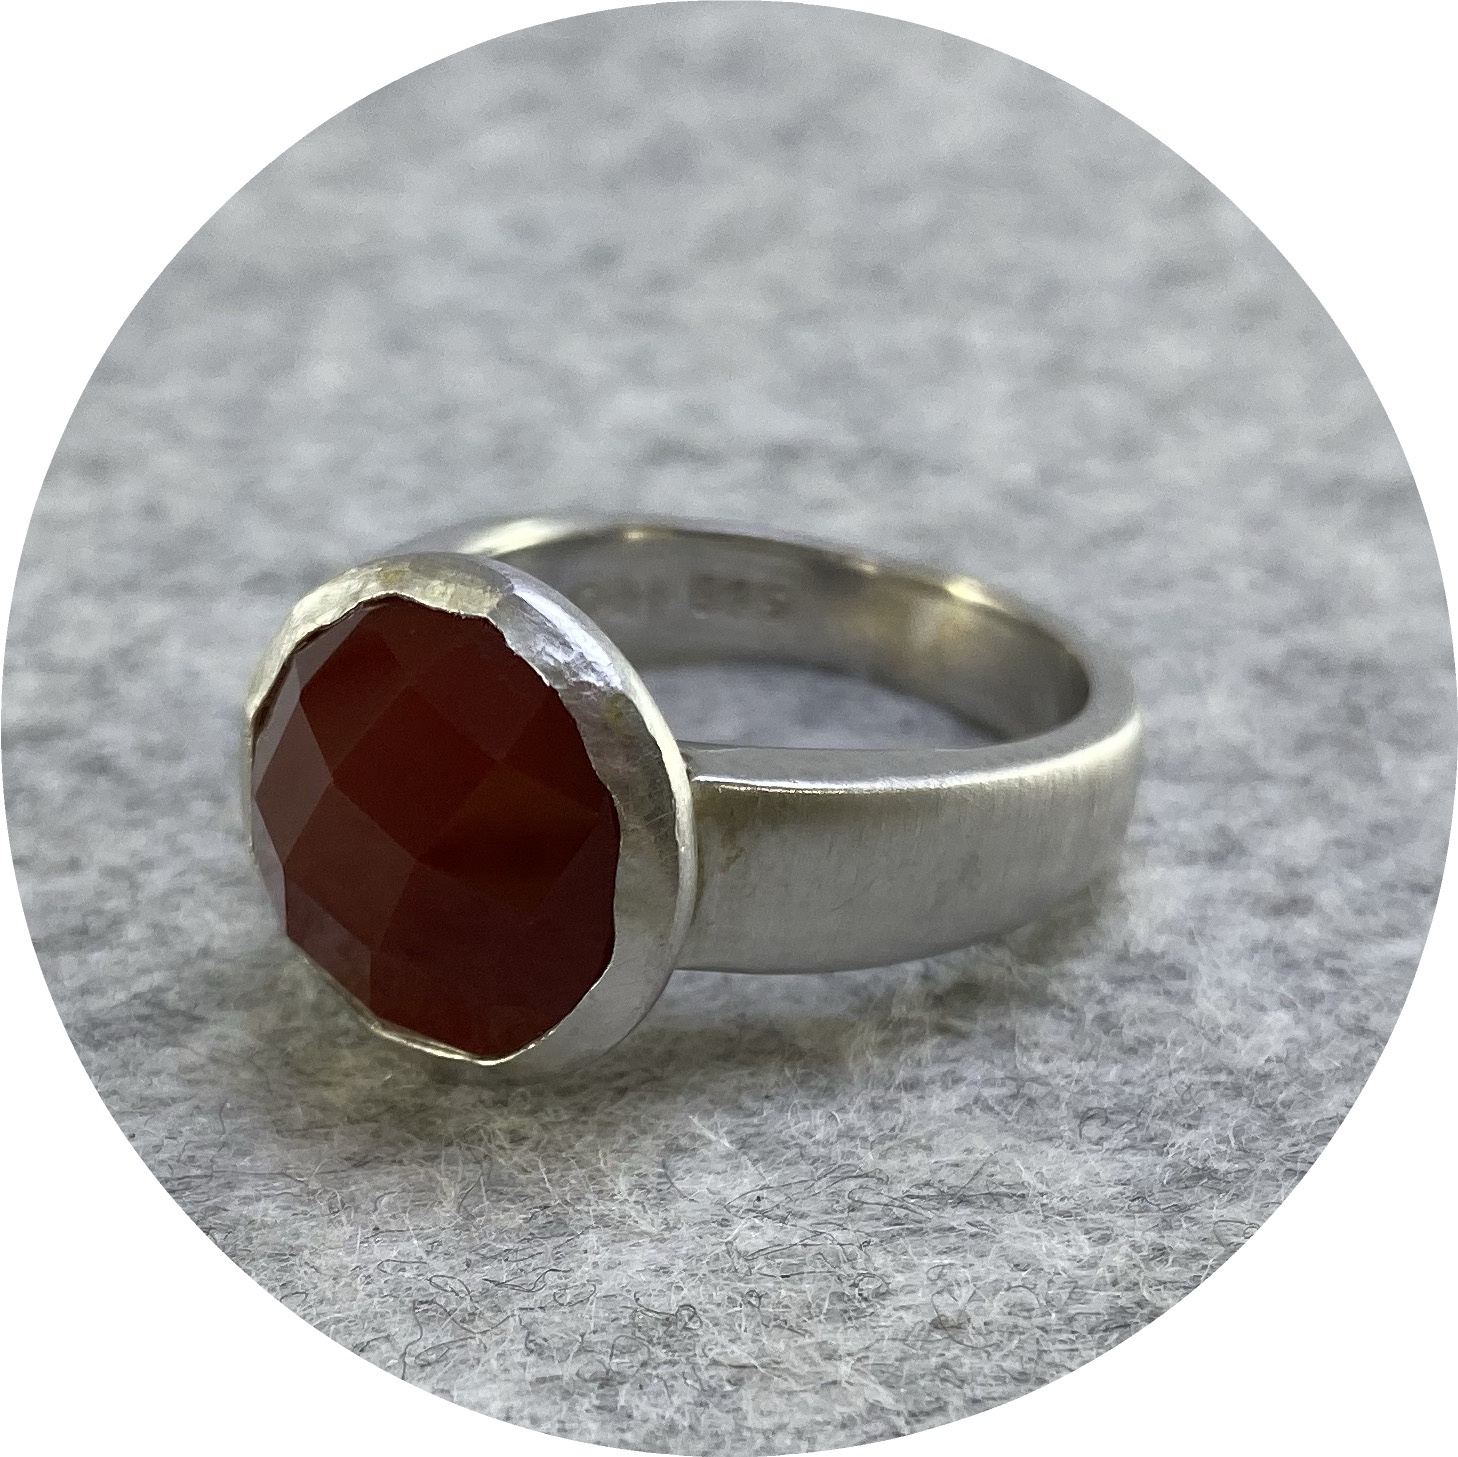 Orion Joel- Botanica Ring. Sterling silver with 12mm rose cut carnelian. size P1/2